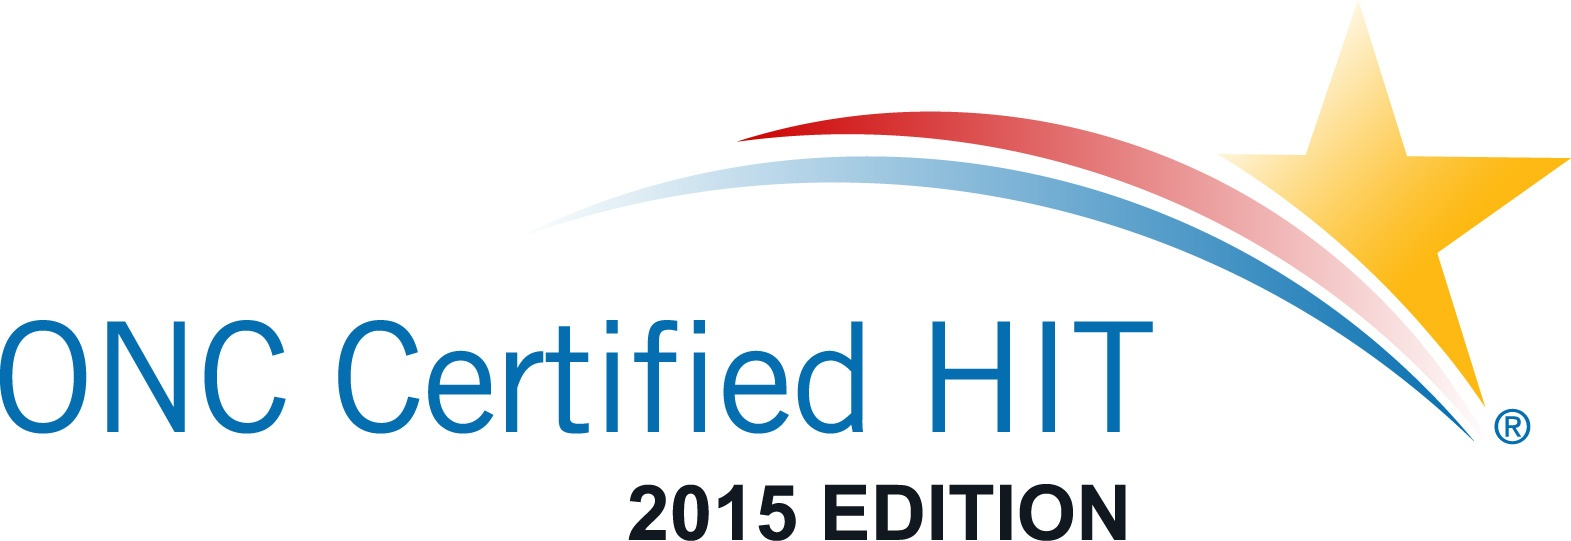 ONC_Certification_HIT_2015Edition_Stacked_RGB